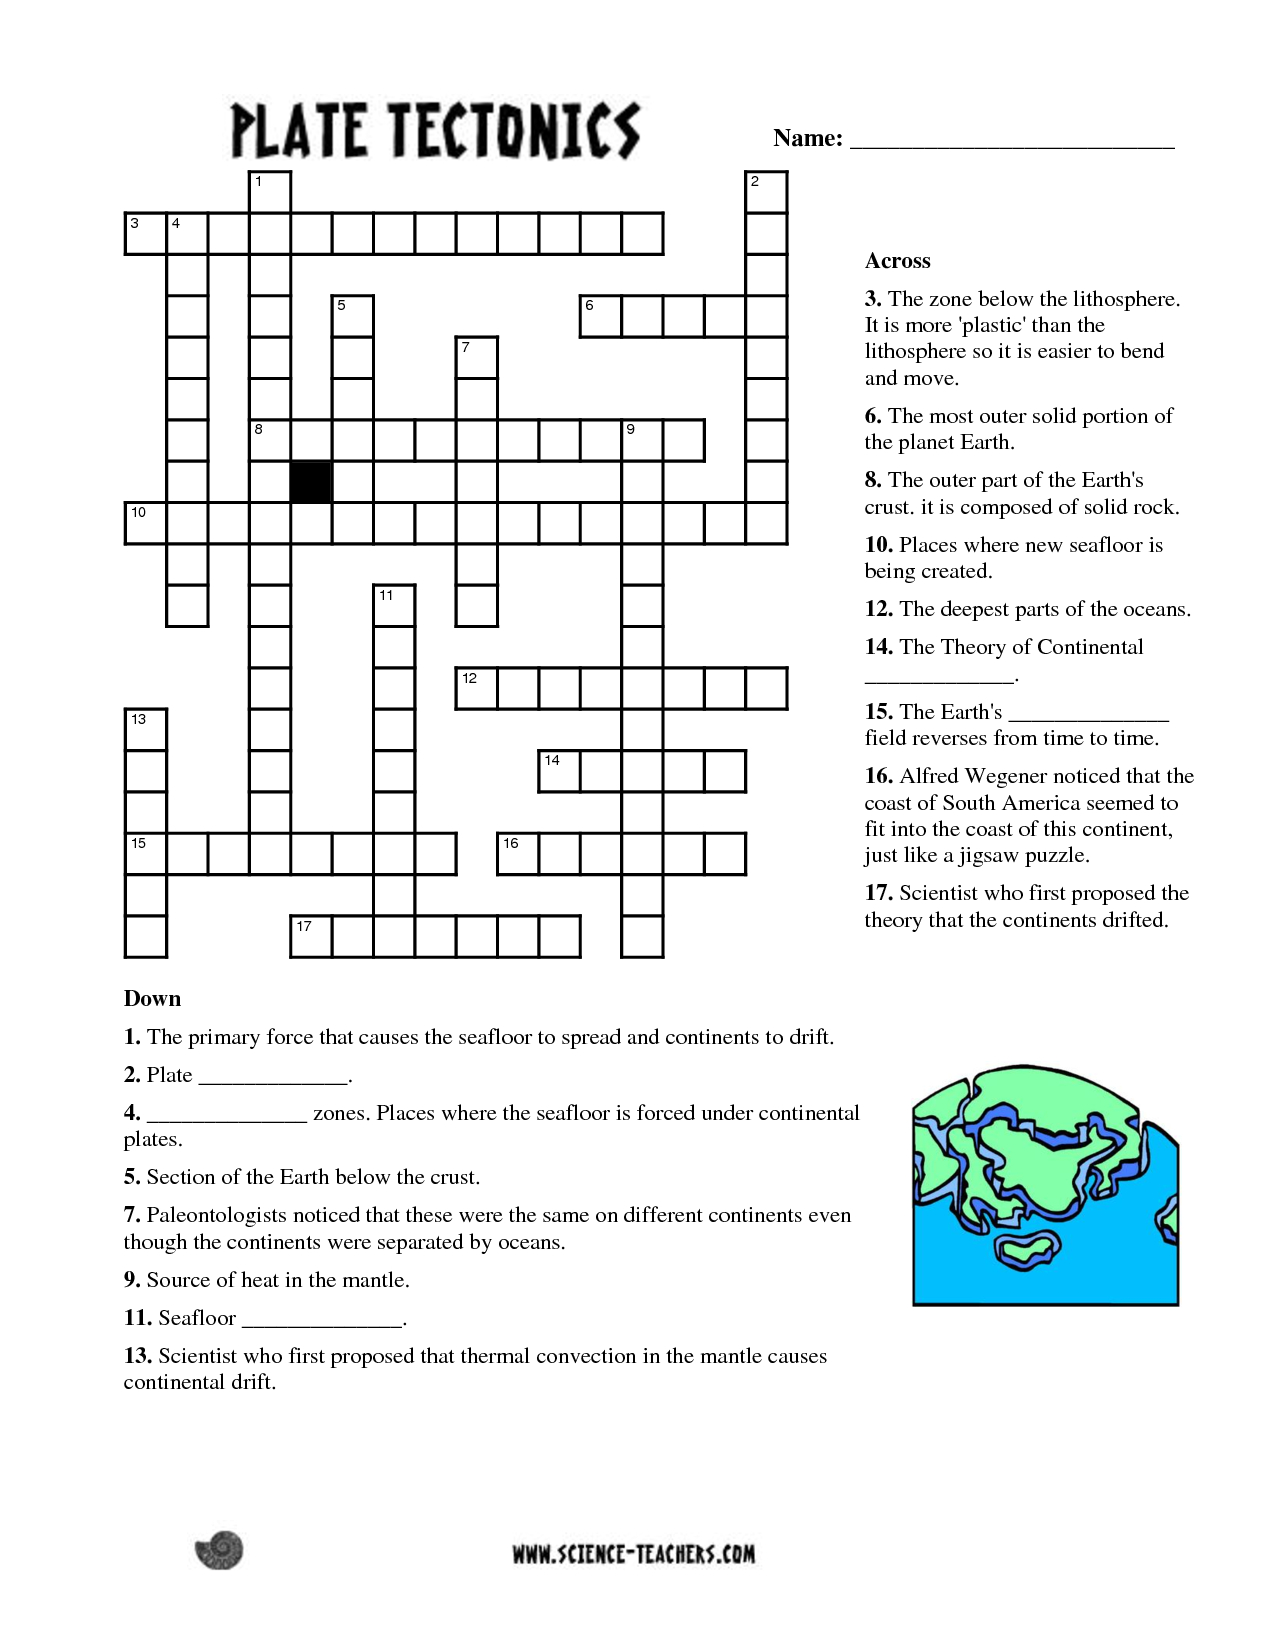 Planets Crossword Puzzle Worksheet - Pics About Space | Fun Science - Printable Science Puzzles